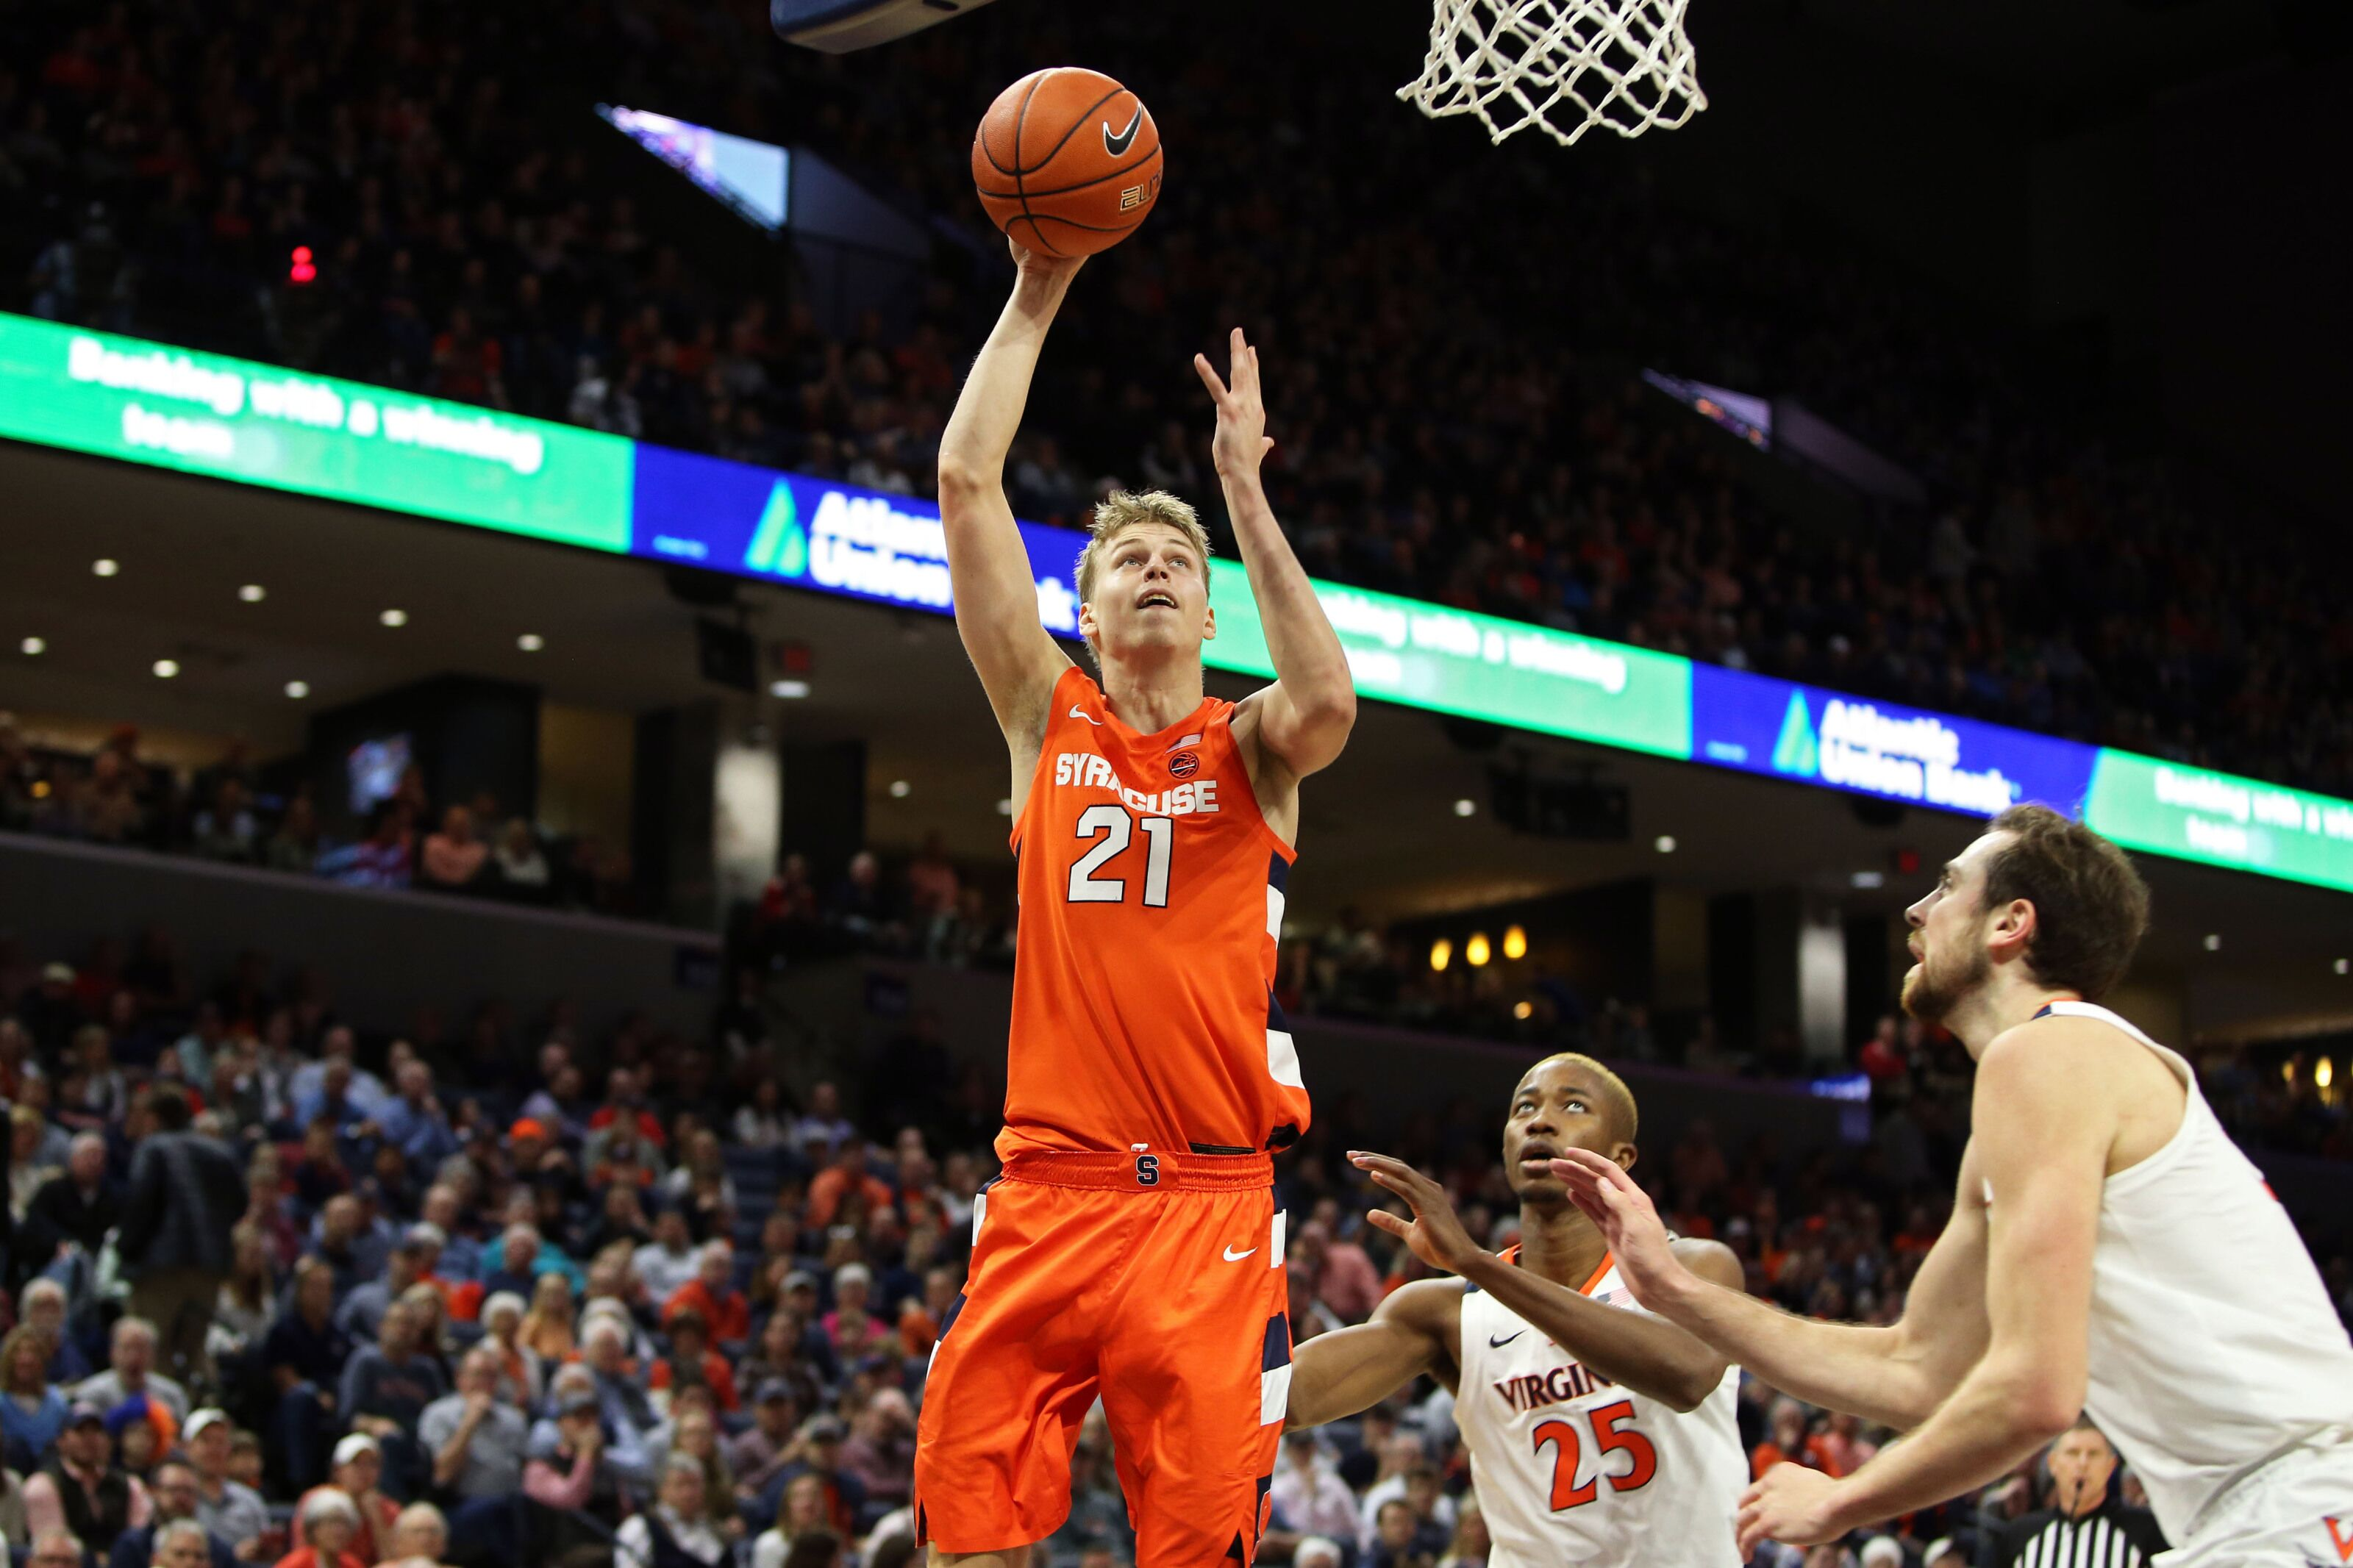 Syracuse Basketball: Offense displayed new wrinkles in win over BC